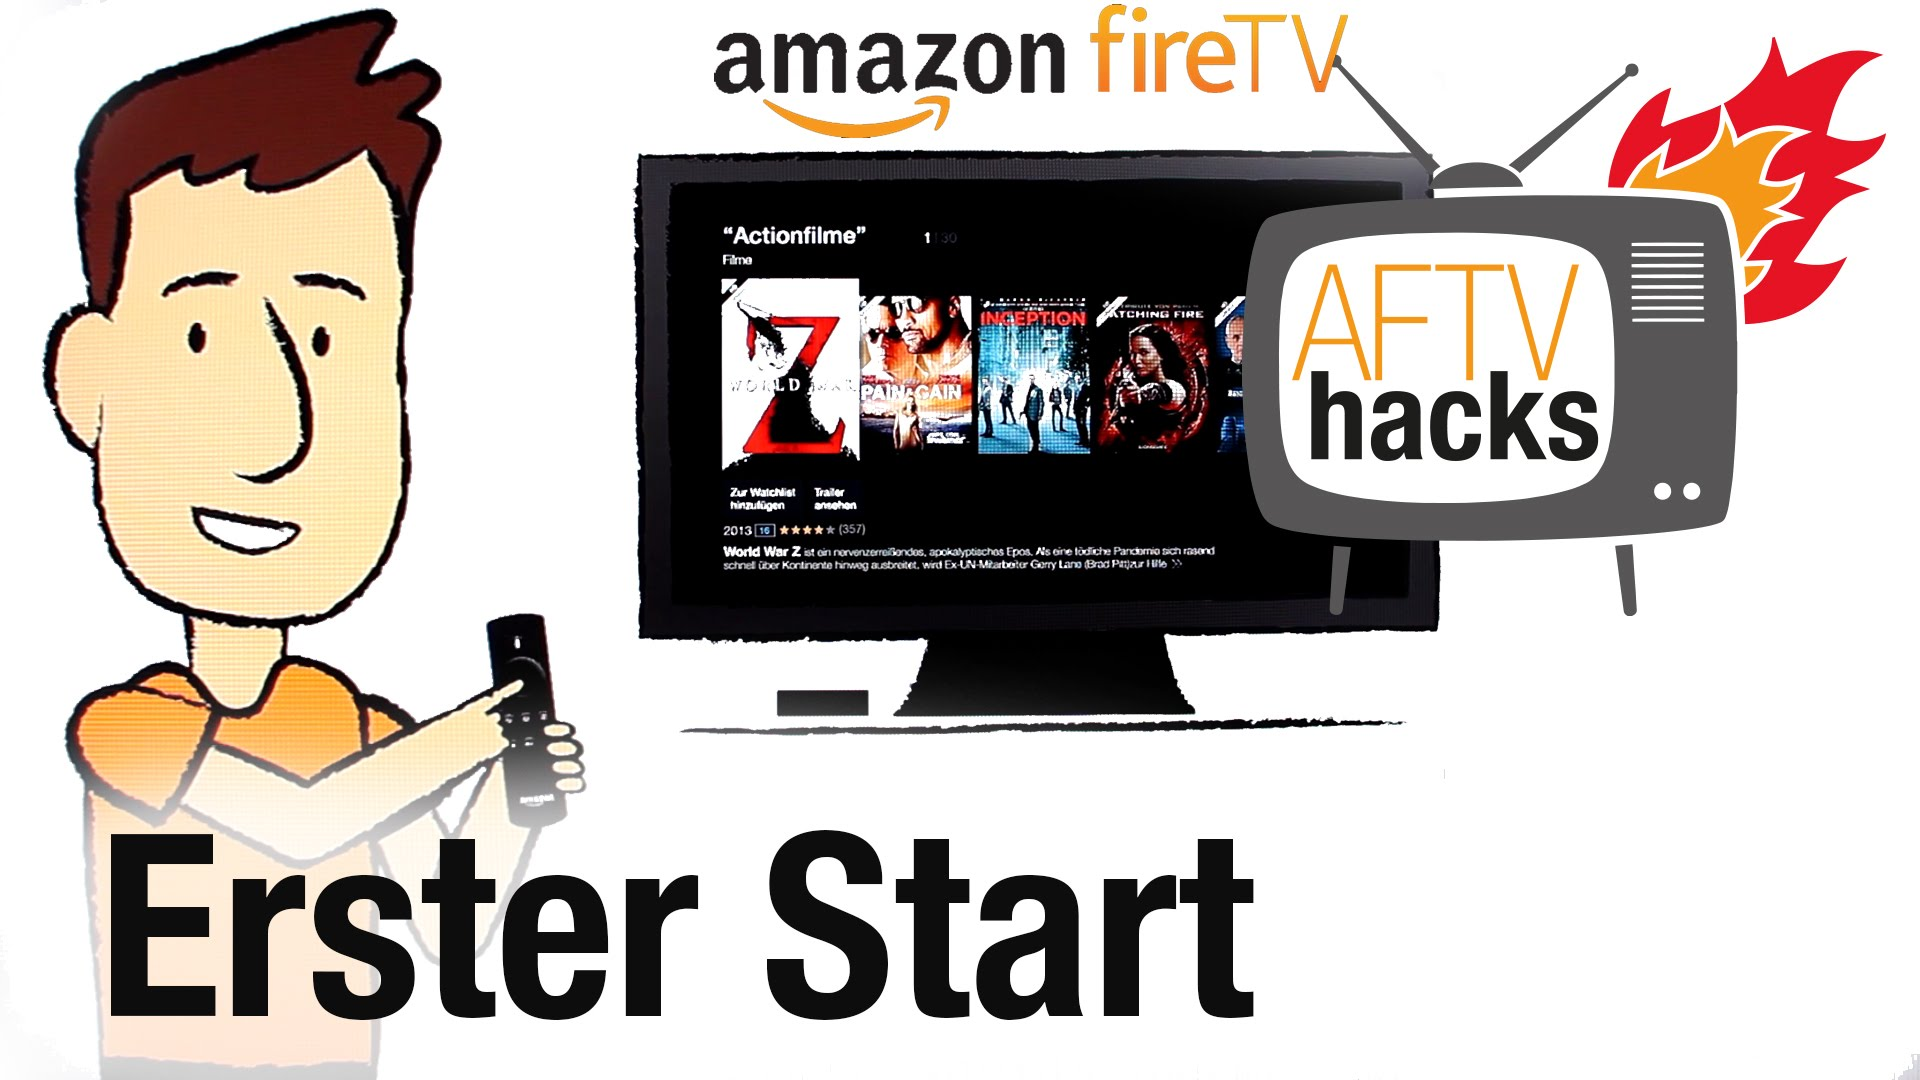 Erster Start des deutschen amazon Fire TV - First Boot